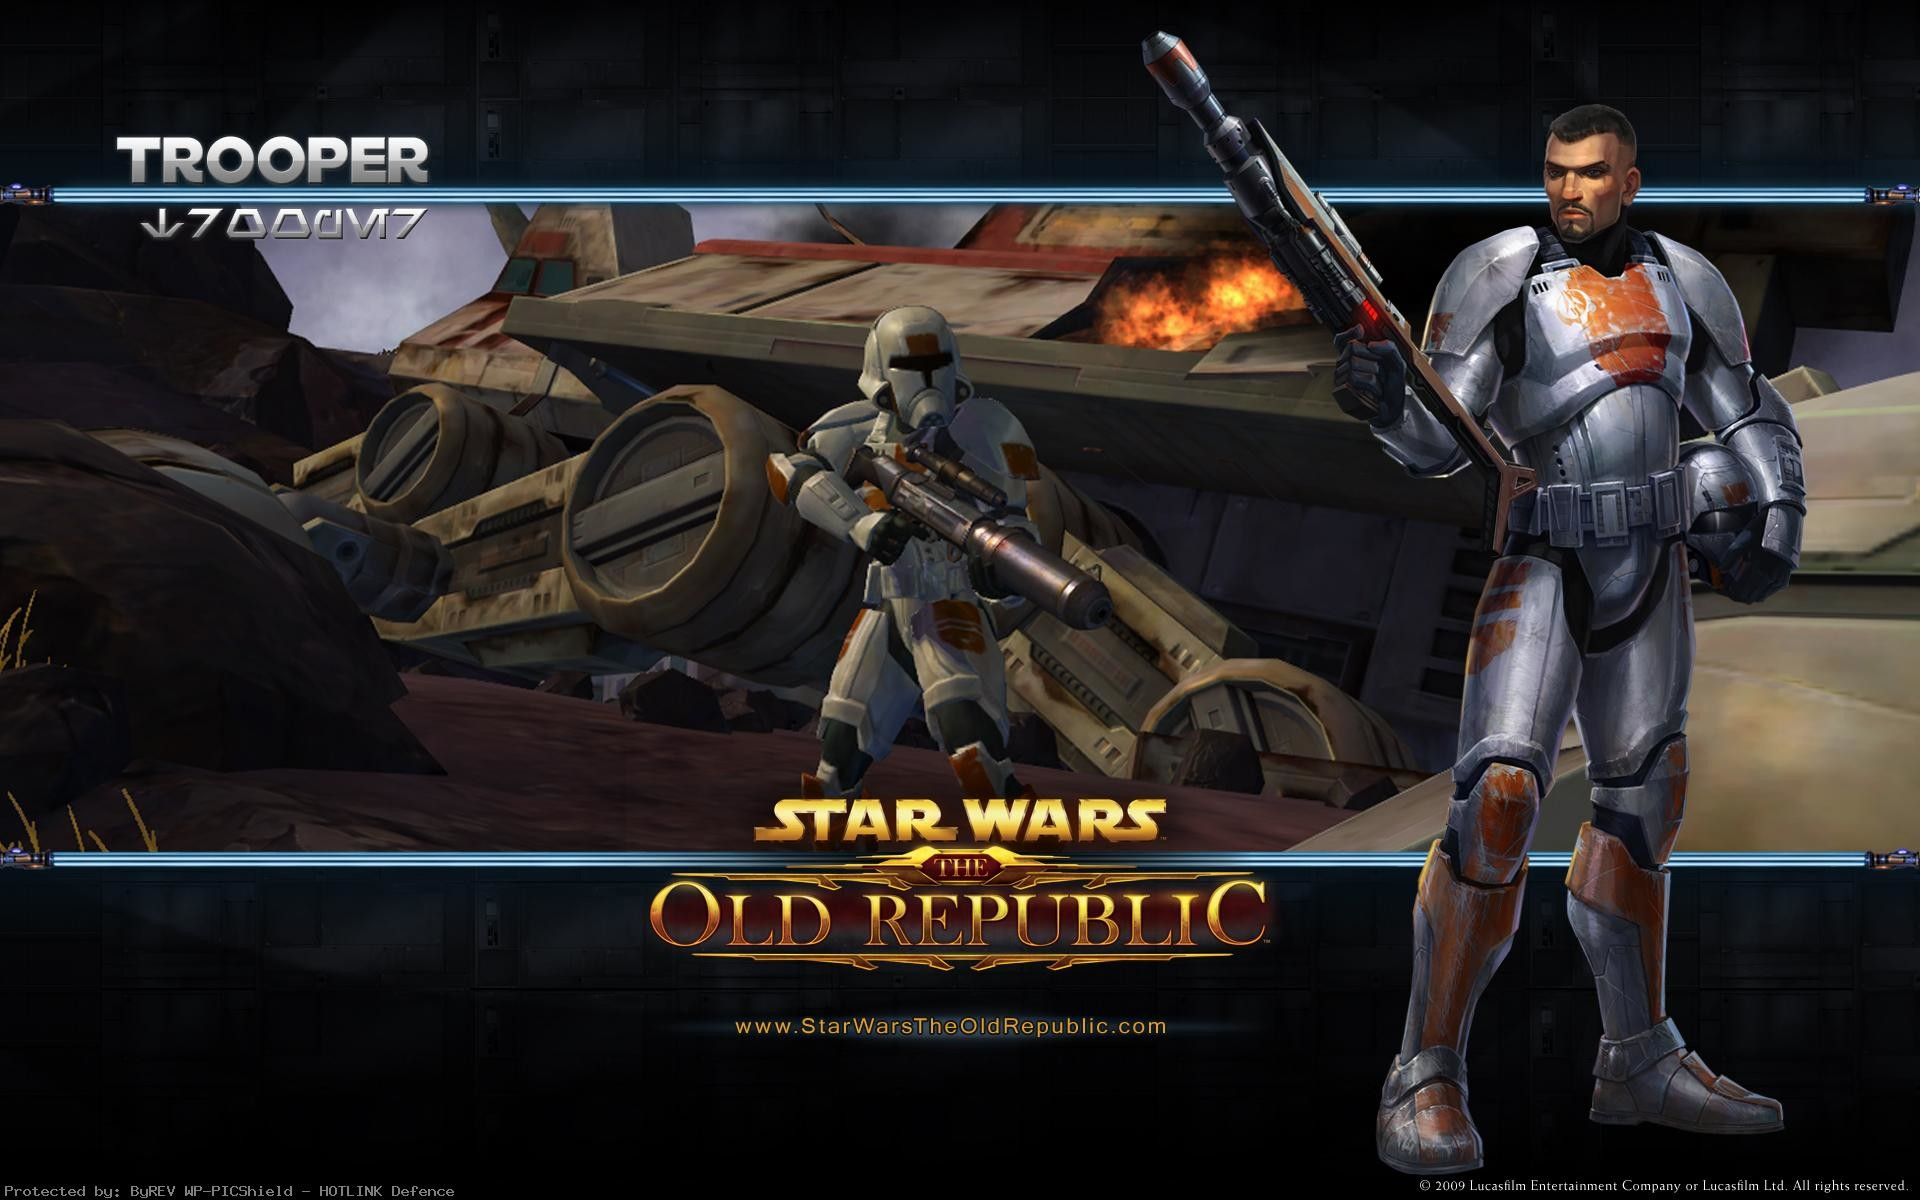 star-wars-the-Old-Republic-is-the-fastest-